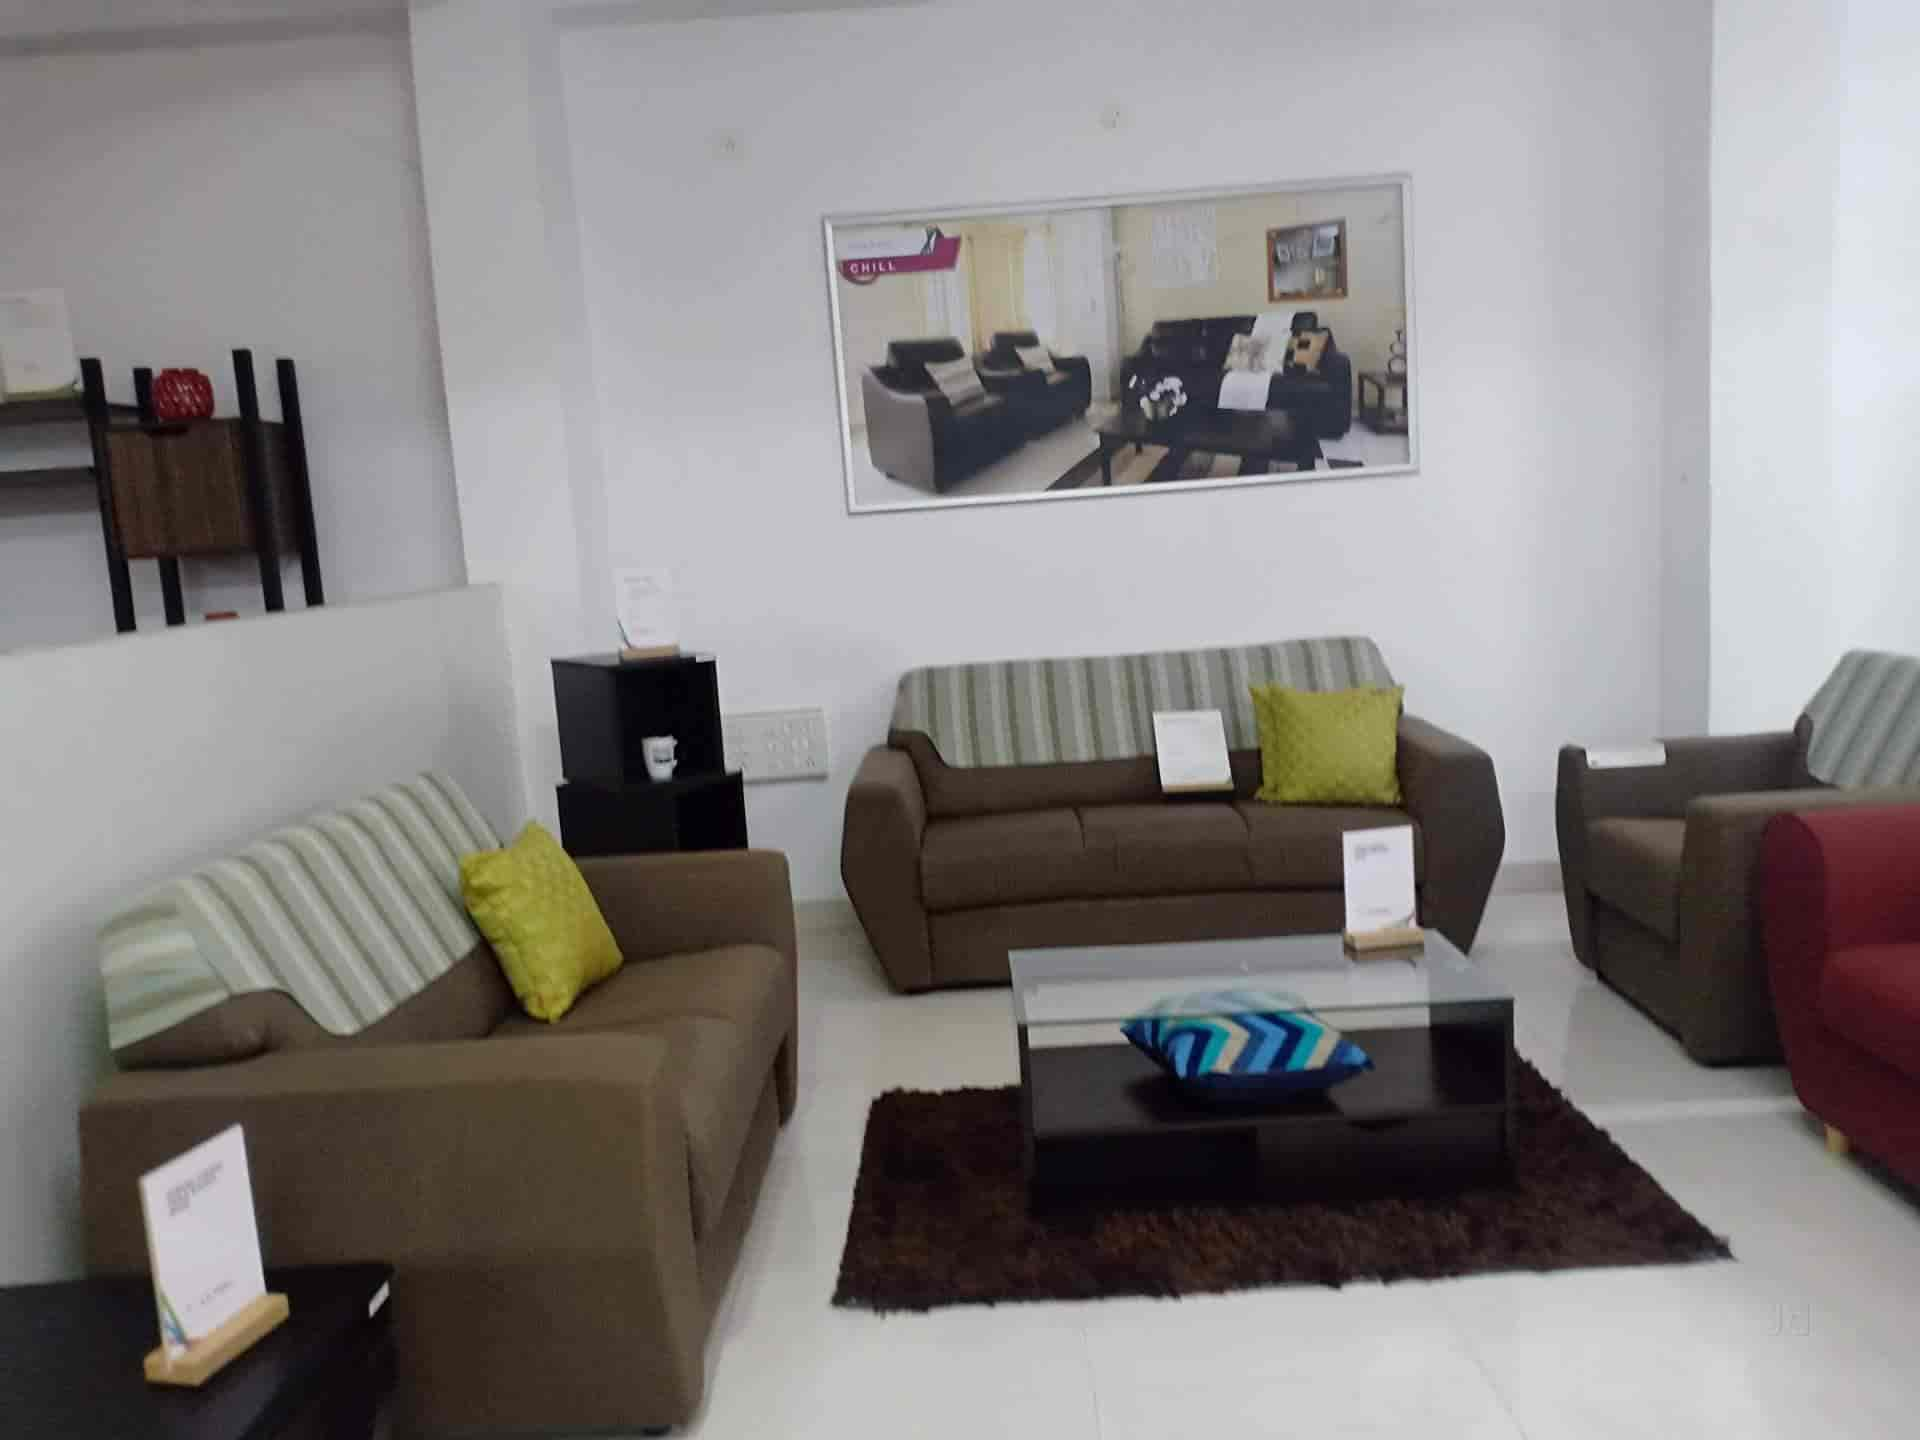 Interio Sofa Marilyn Godrej Interio Kukatpally Furniture Dealers In Hyderabad Justdial